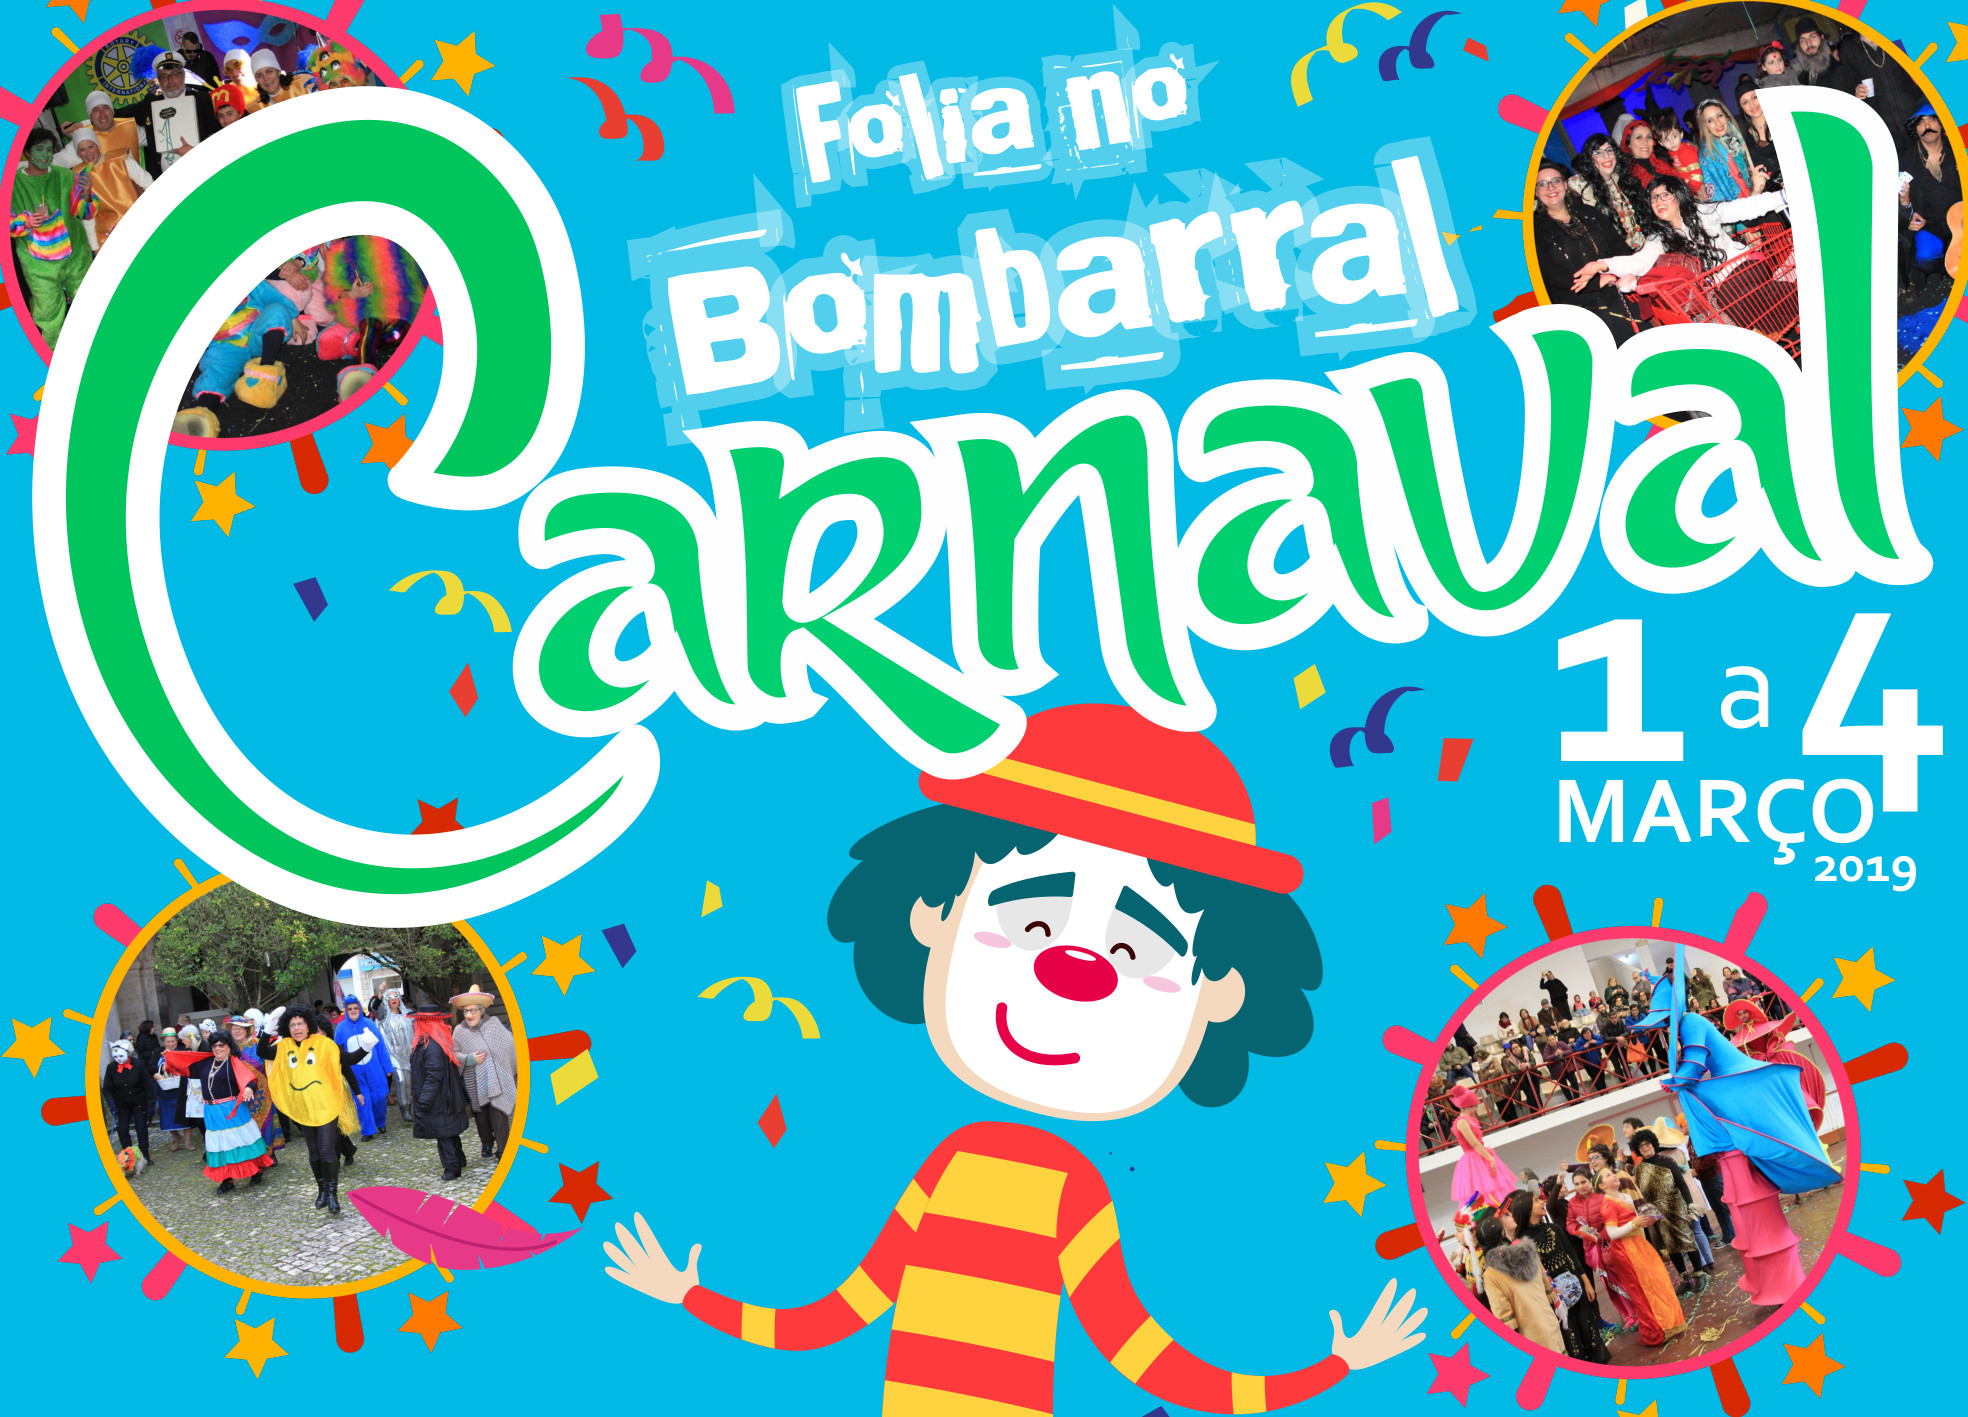 Folia no Bombarral - Carnaval 2019